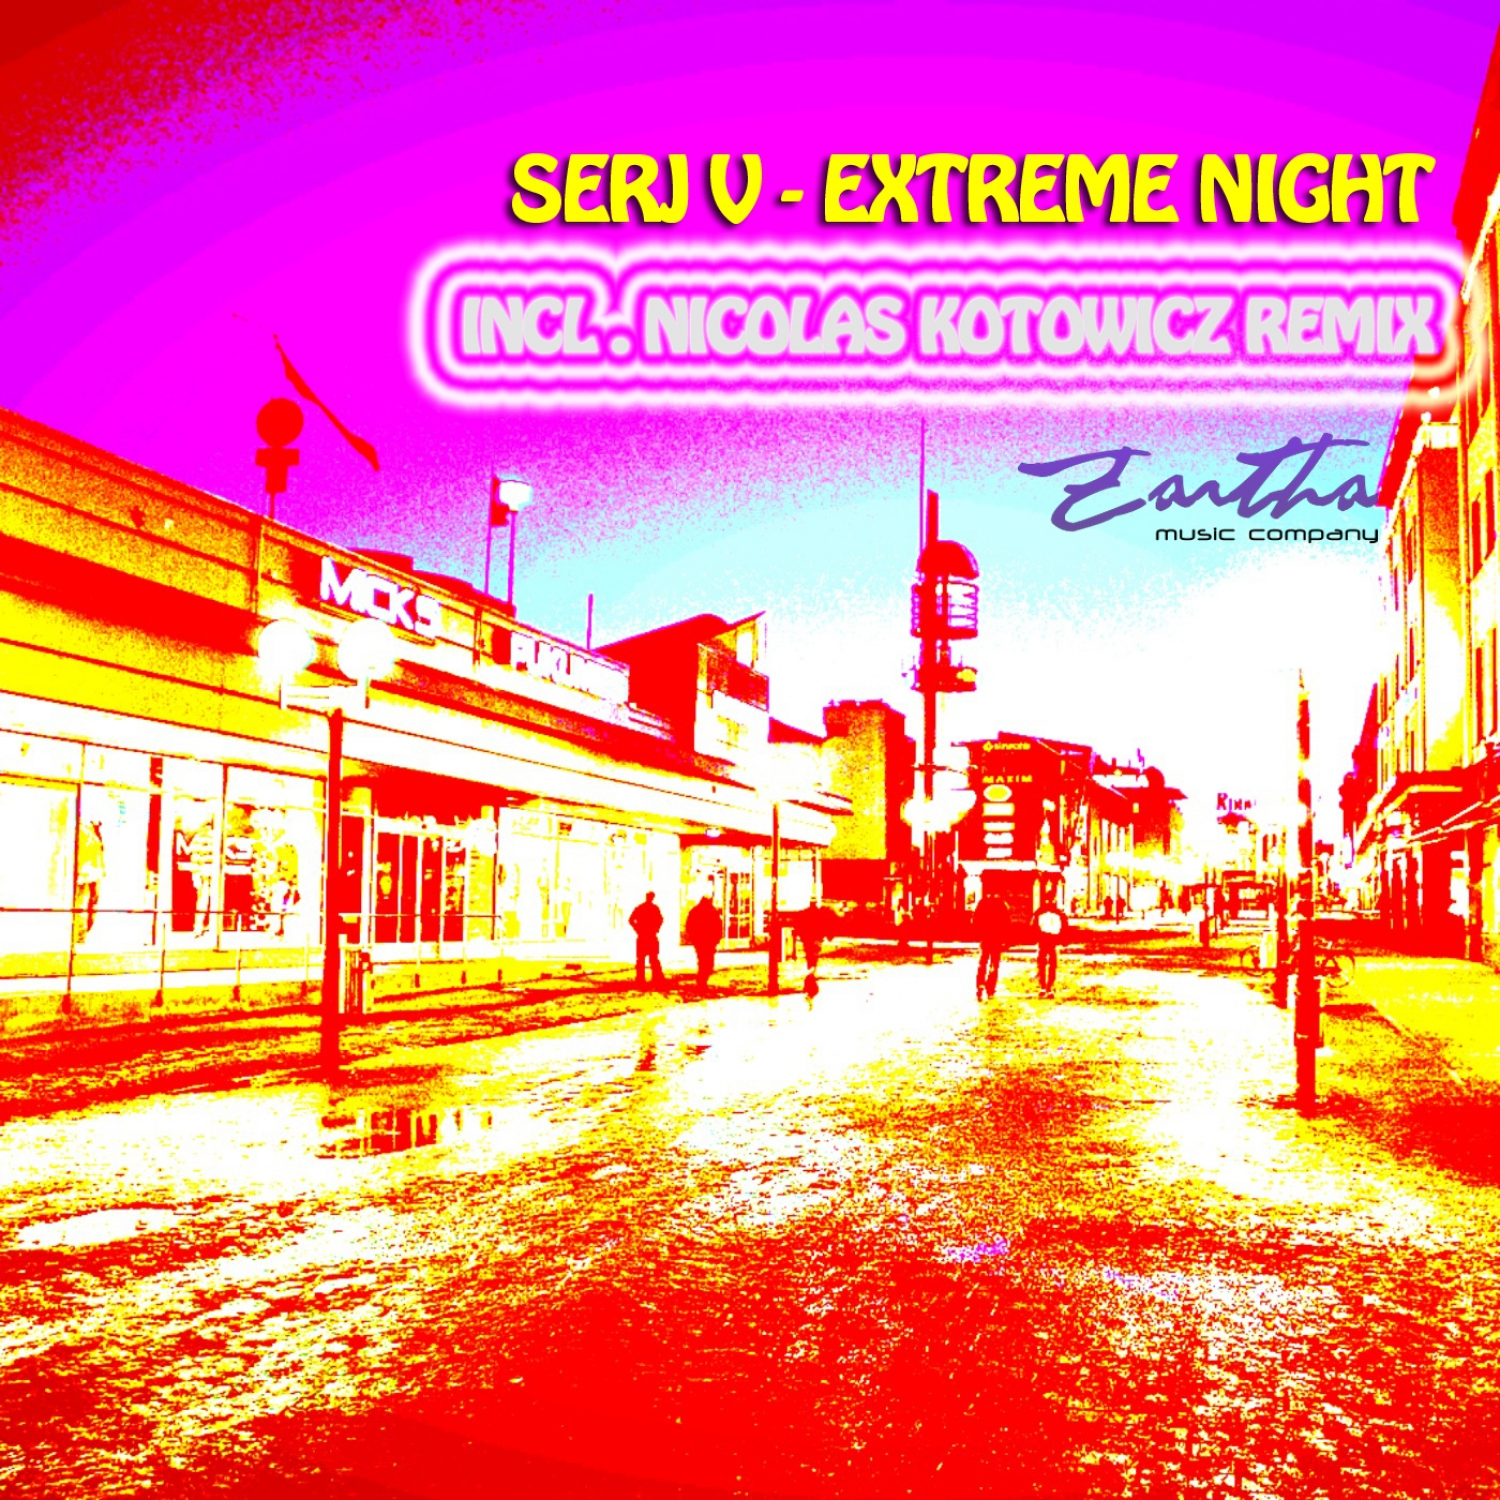 Serj V - Extreme Night  (Original Mix)